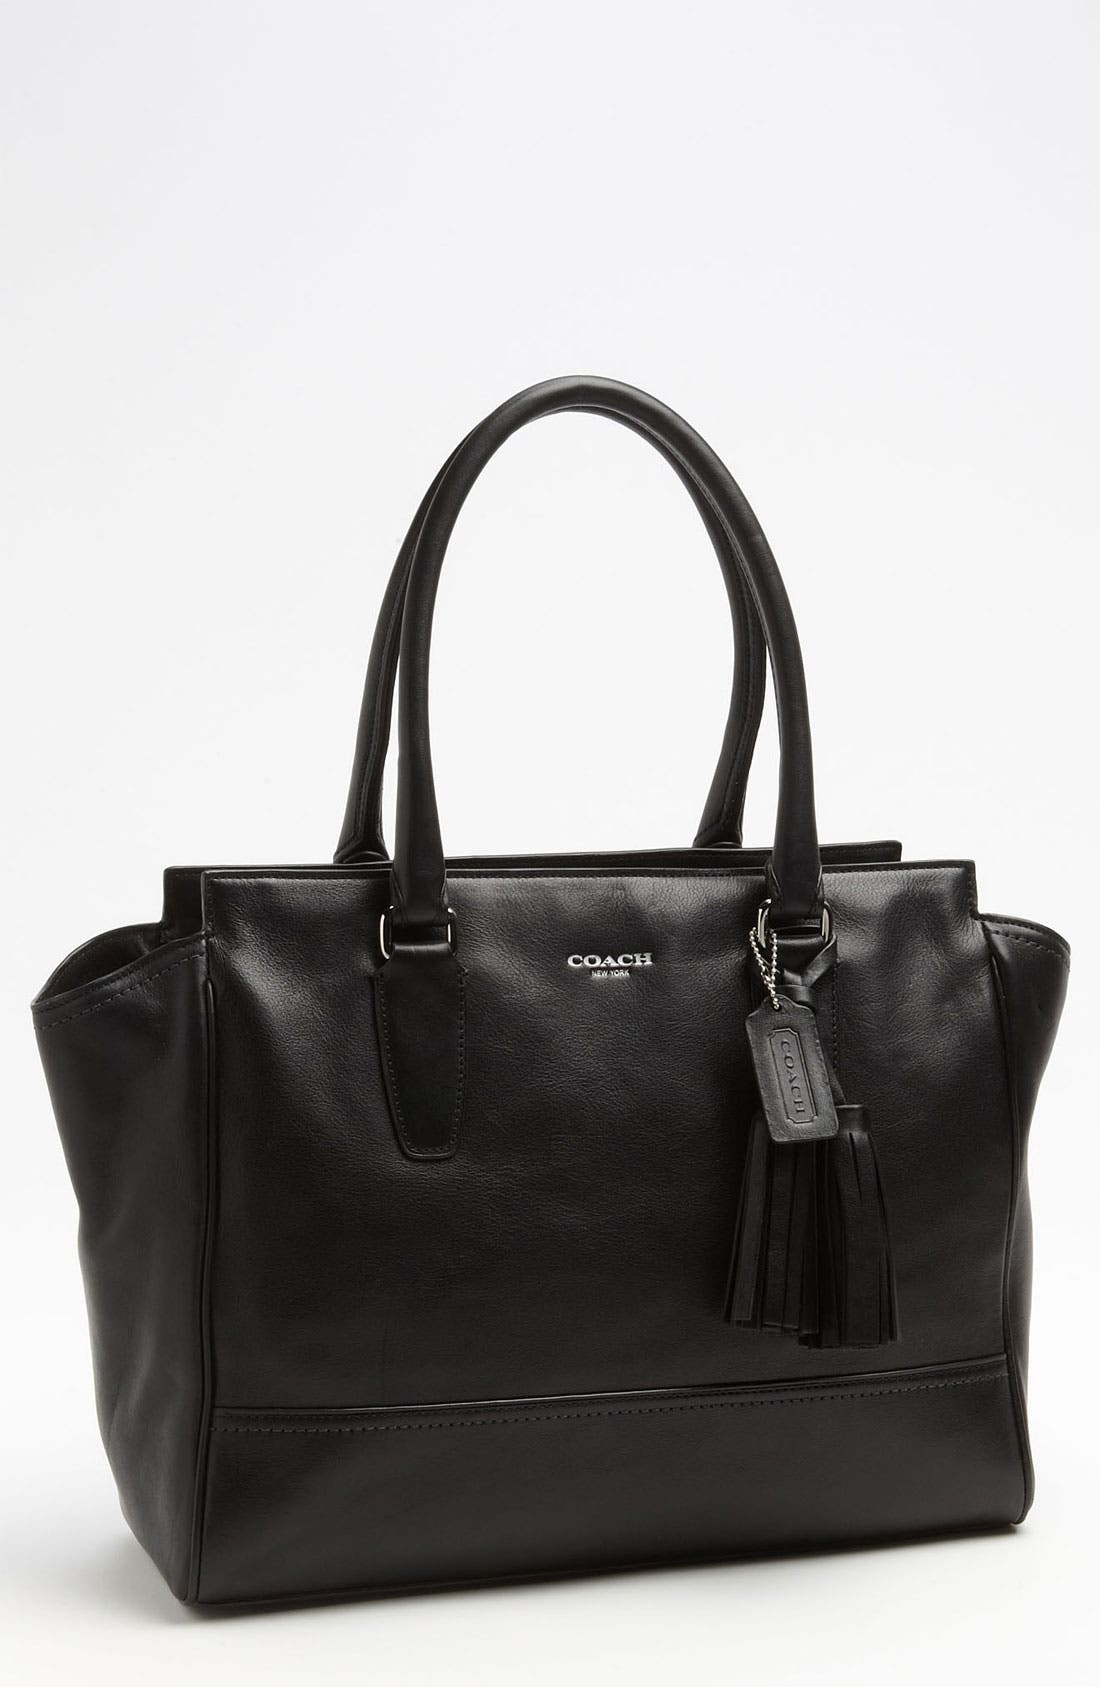 COACH 'Legacy - Medium' Leather Carryall, Main, color, 045